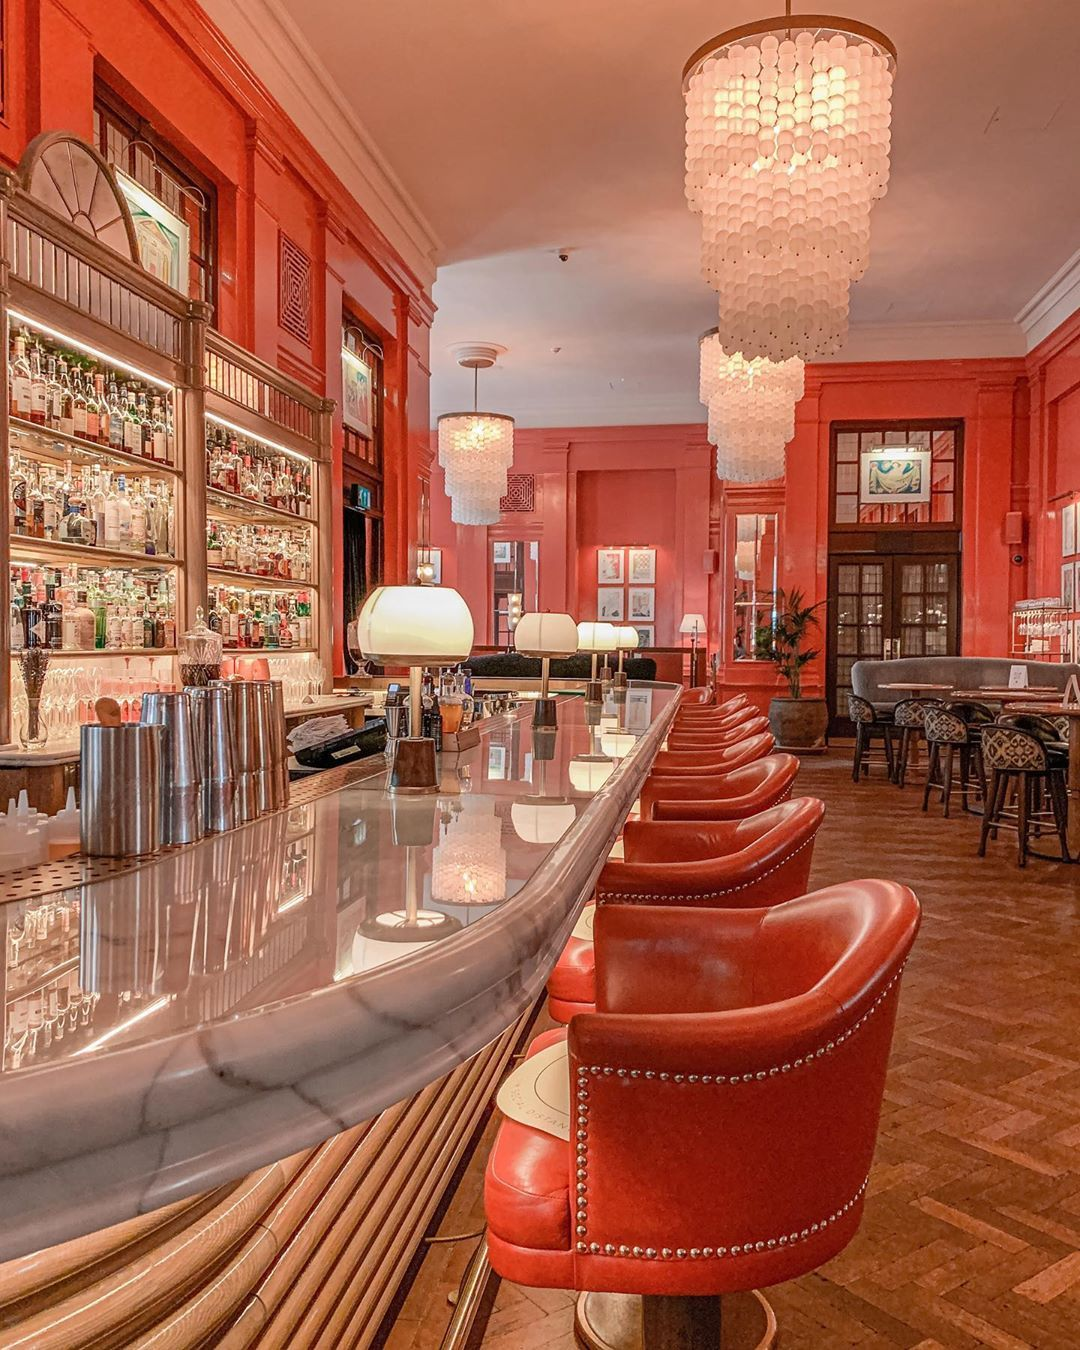 The Coral Room is an eyecatching spot to have beverages and evening tea. The hues are striking and popping!